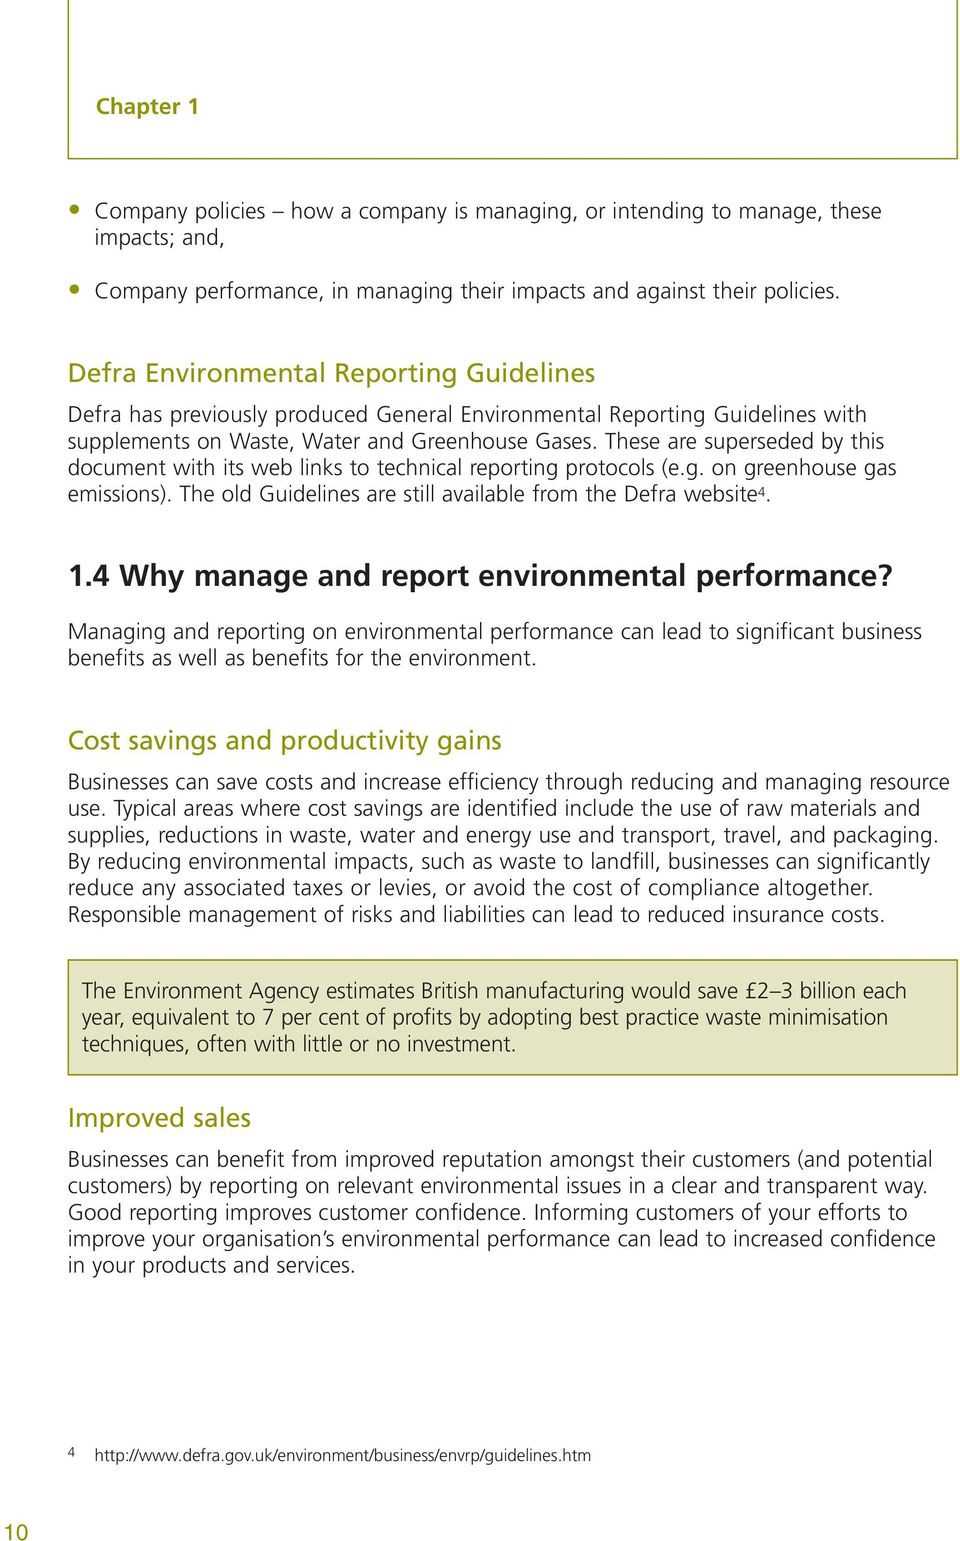 These are superseded by this document with its web links to technical reporting protocols (e.g. on greenhouse gas emissions). The old Guidelines are still available from the Defra website 4. 1.